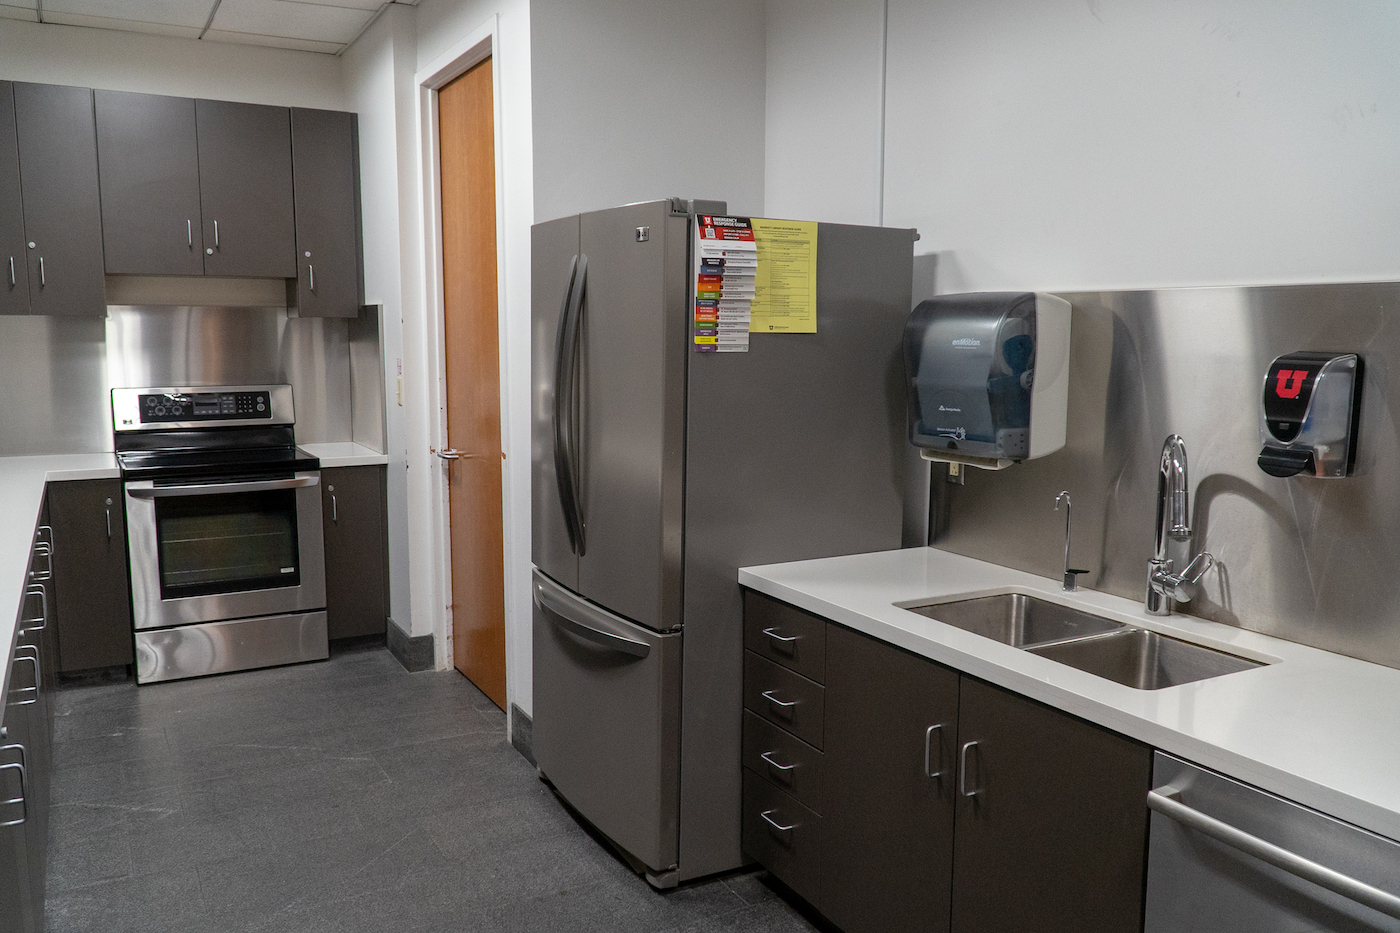 Kitchen next to Gould auditorium